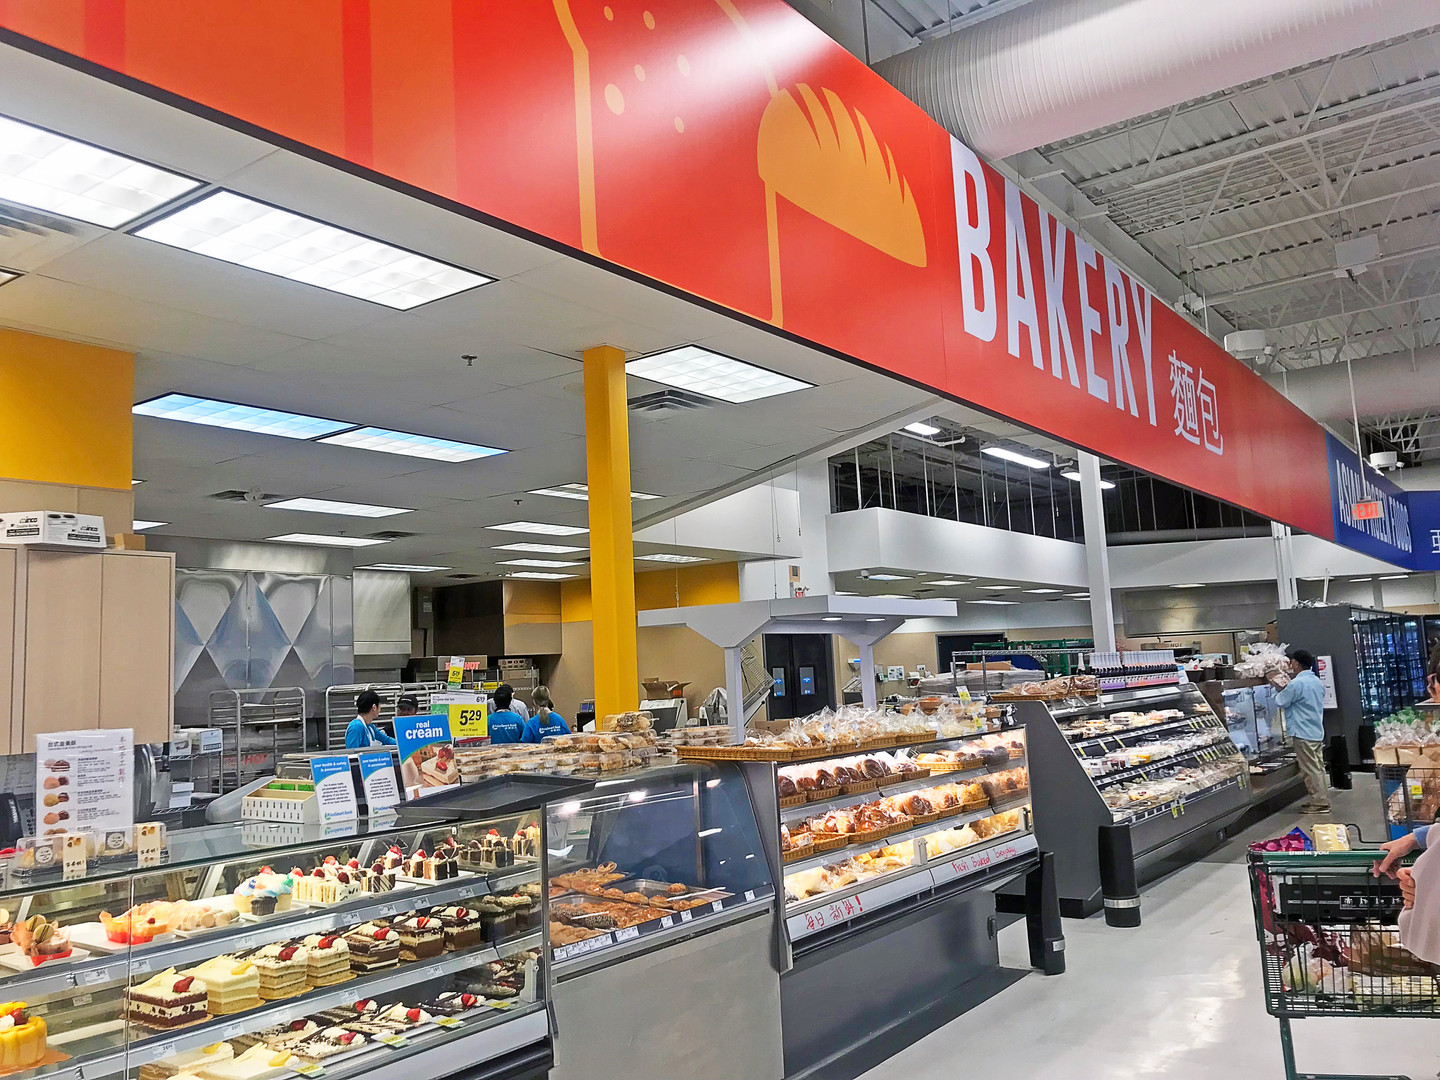 Bakery Section